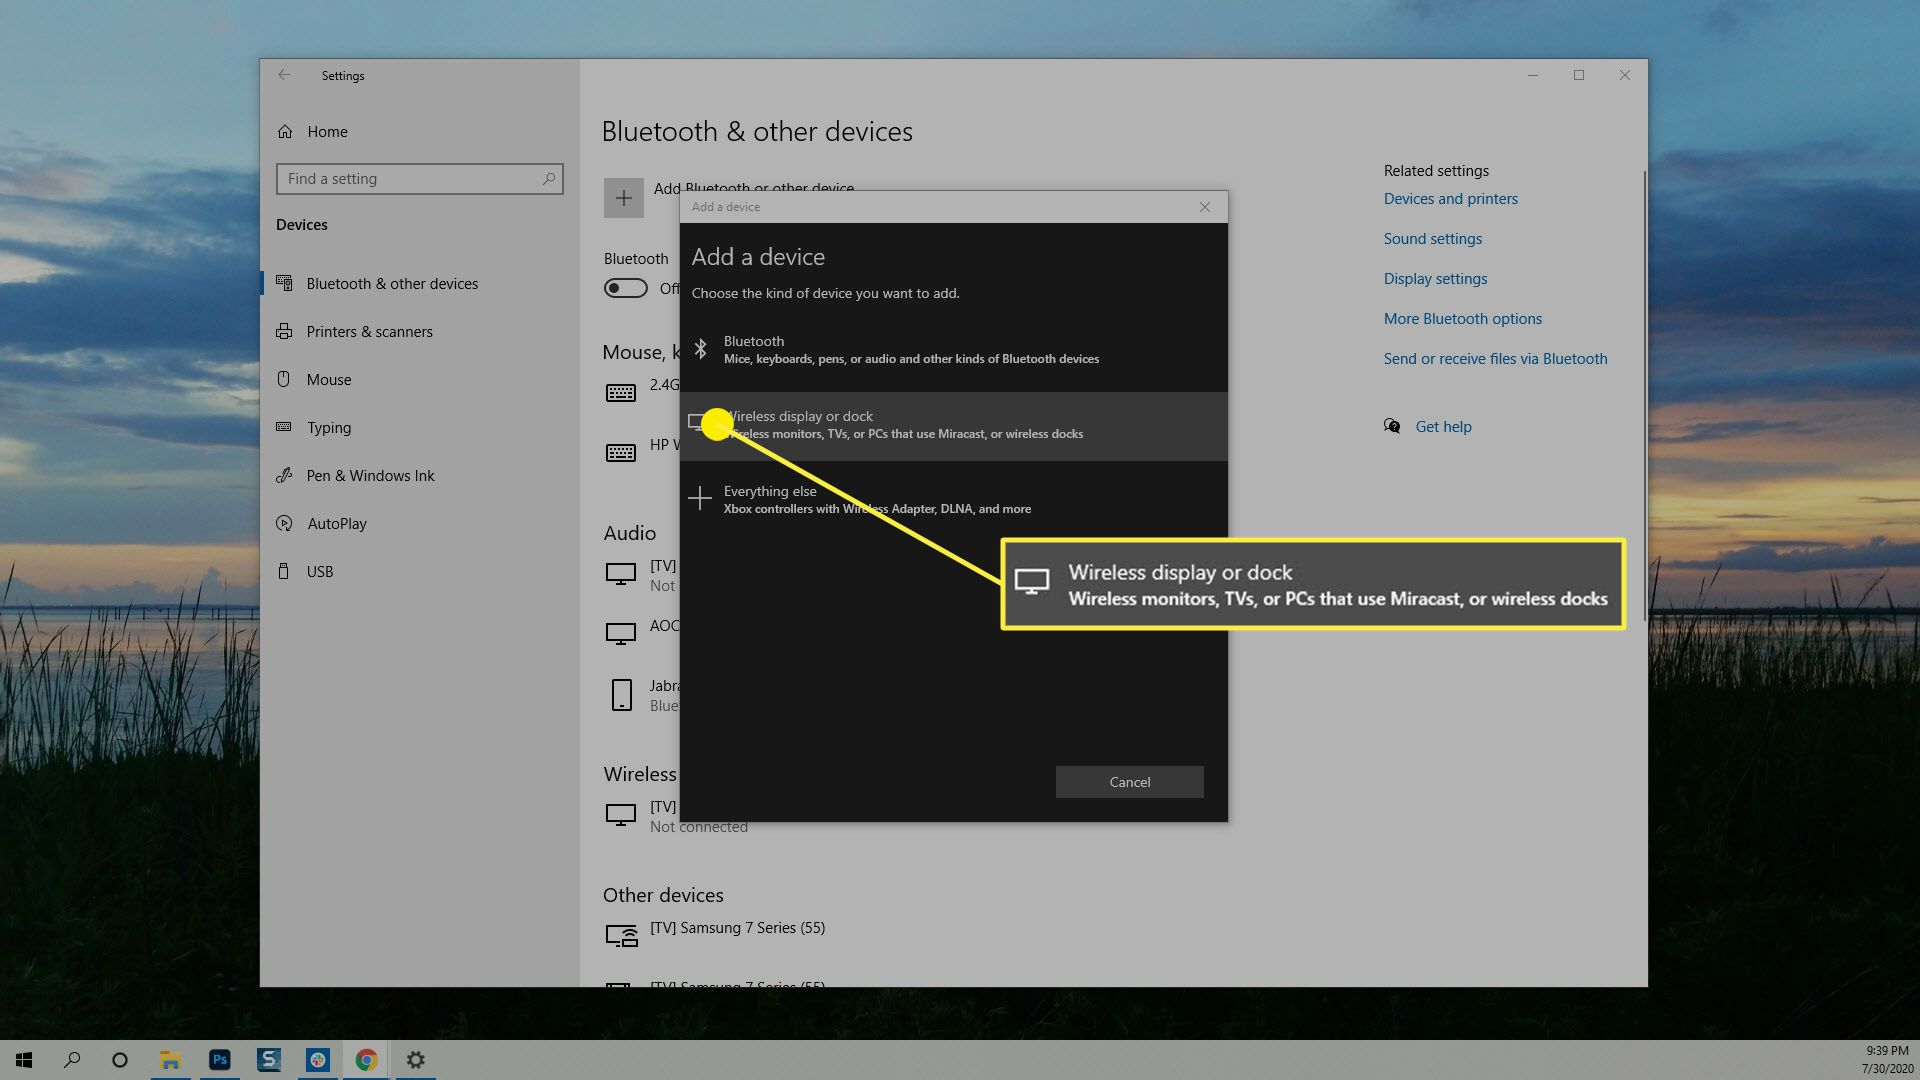 The Wireless display or dock option in Windows 10.